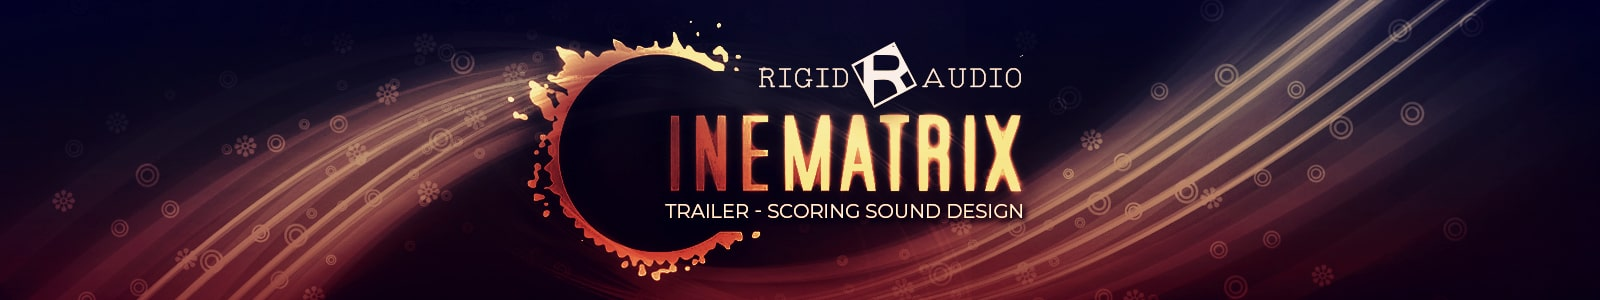 cinematrix by rigid audio